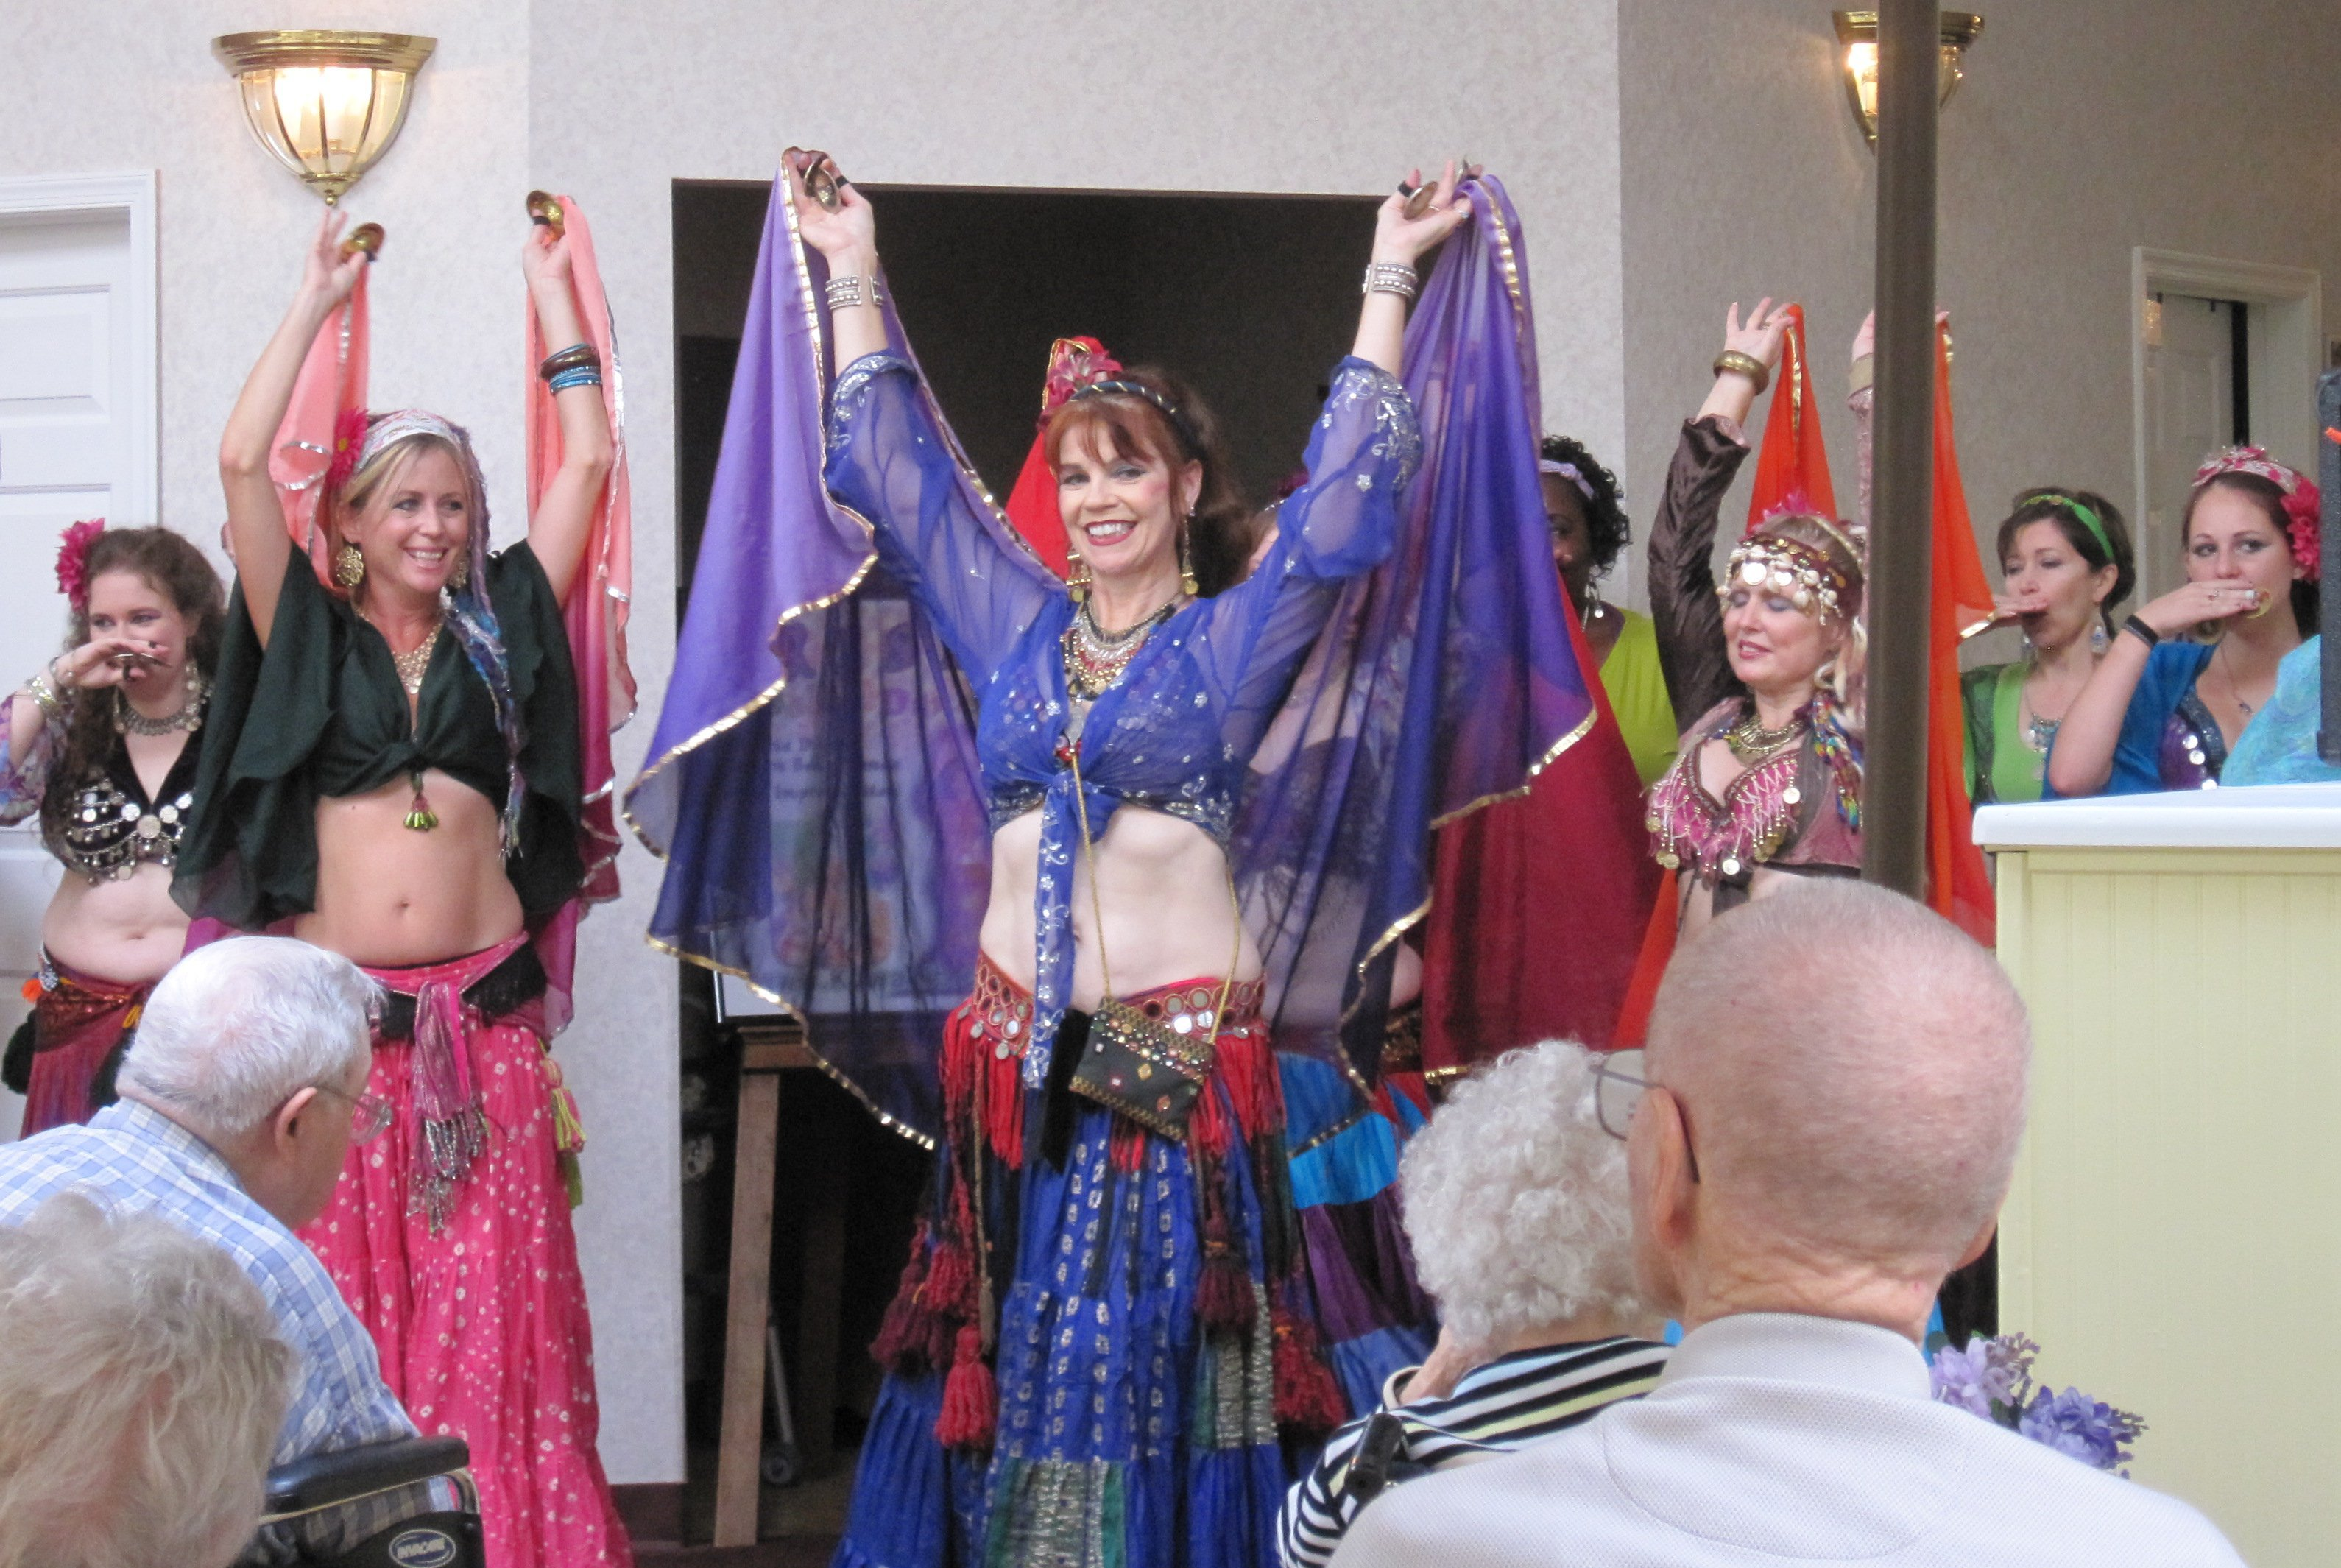 anthea, teach, belly dance, total hip replacement, hipmix.net